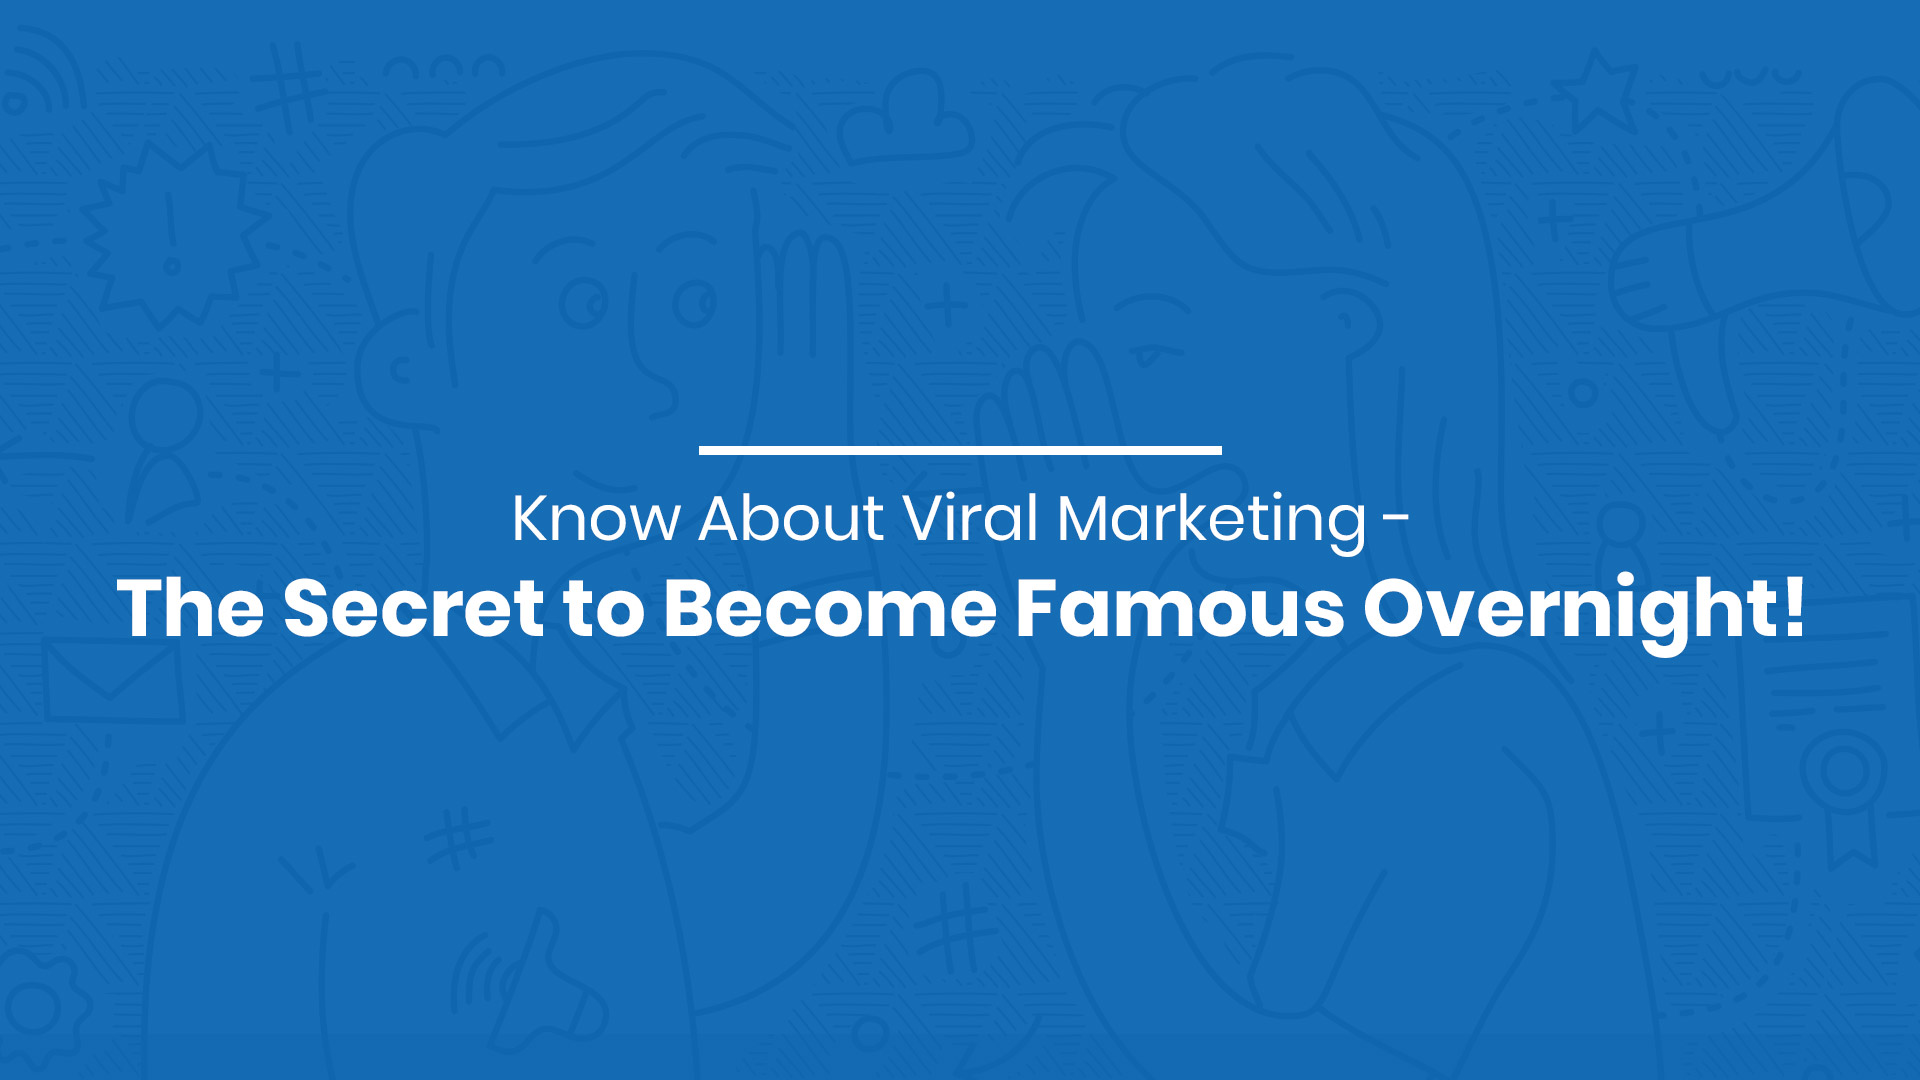 Know About Viral Marketing - The Secret to Become Famous Overnight!